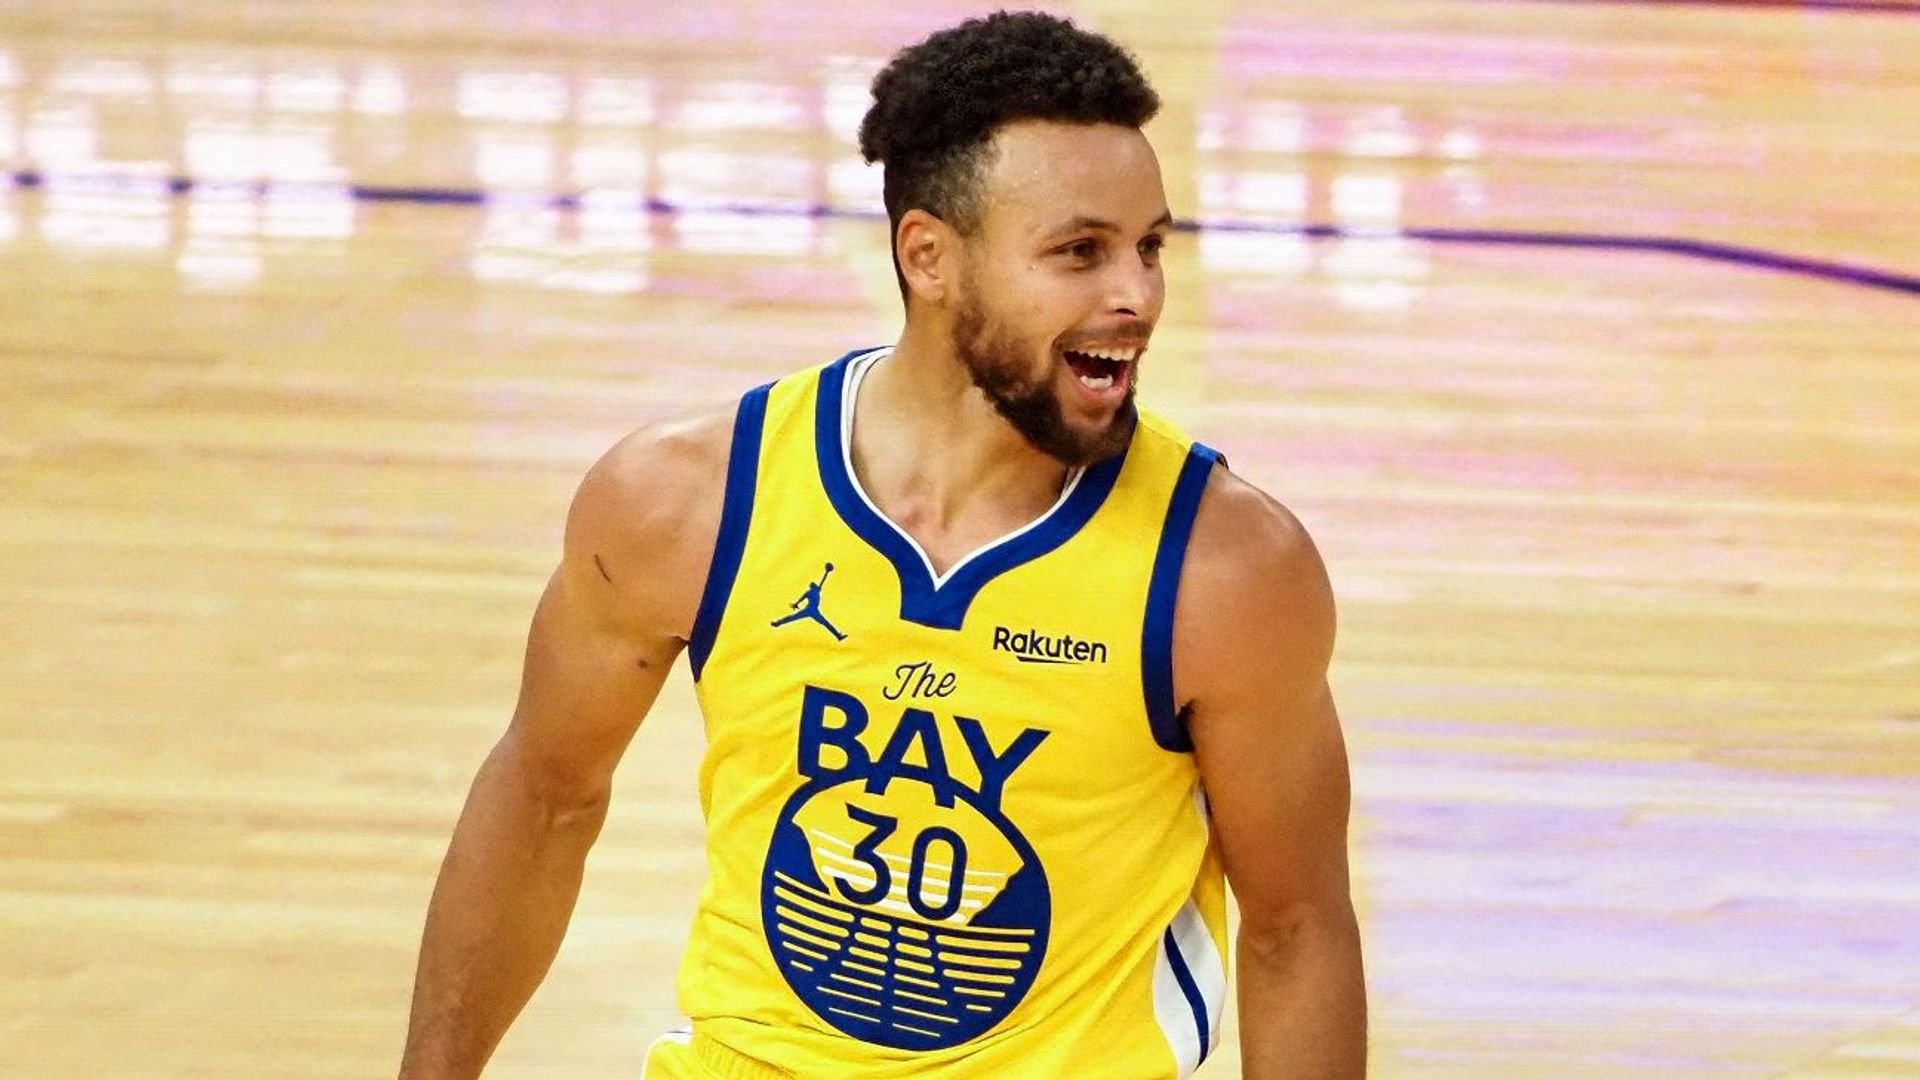 Paul, Curry Favorites to Win NBA All-Star Competitions